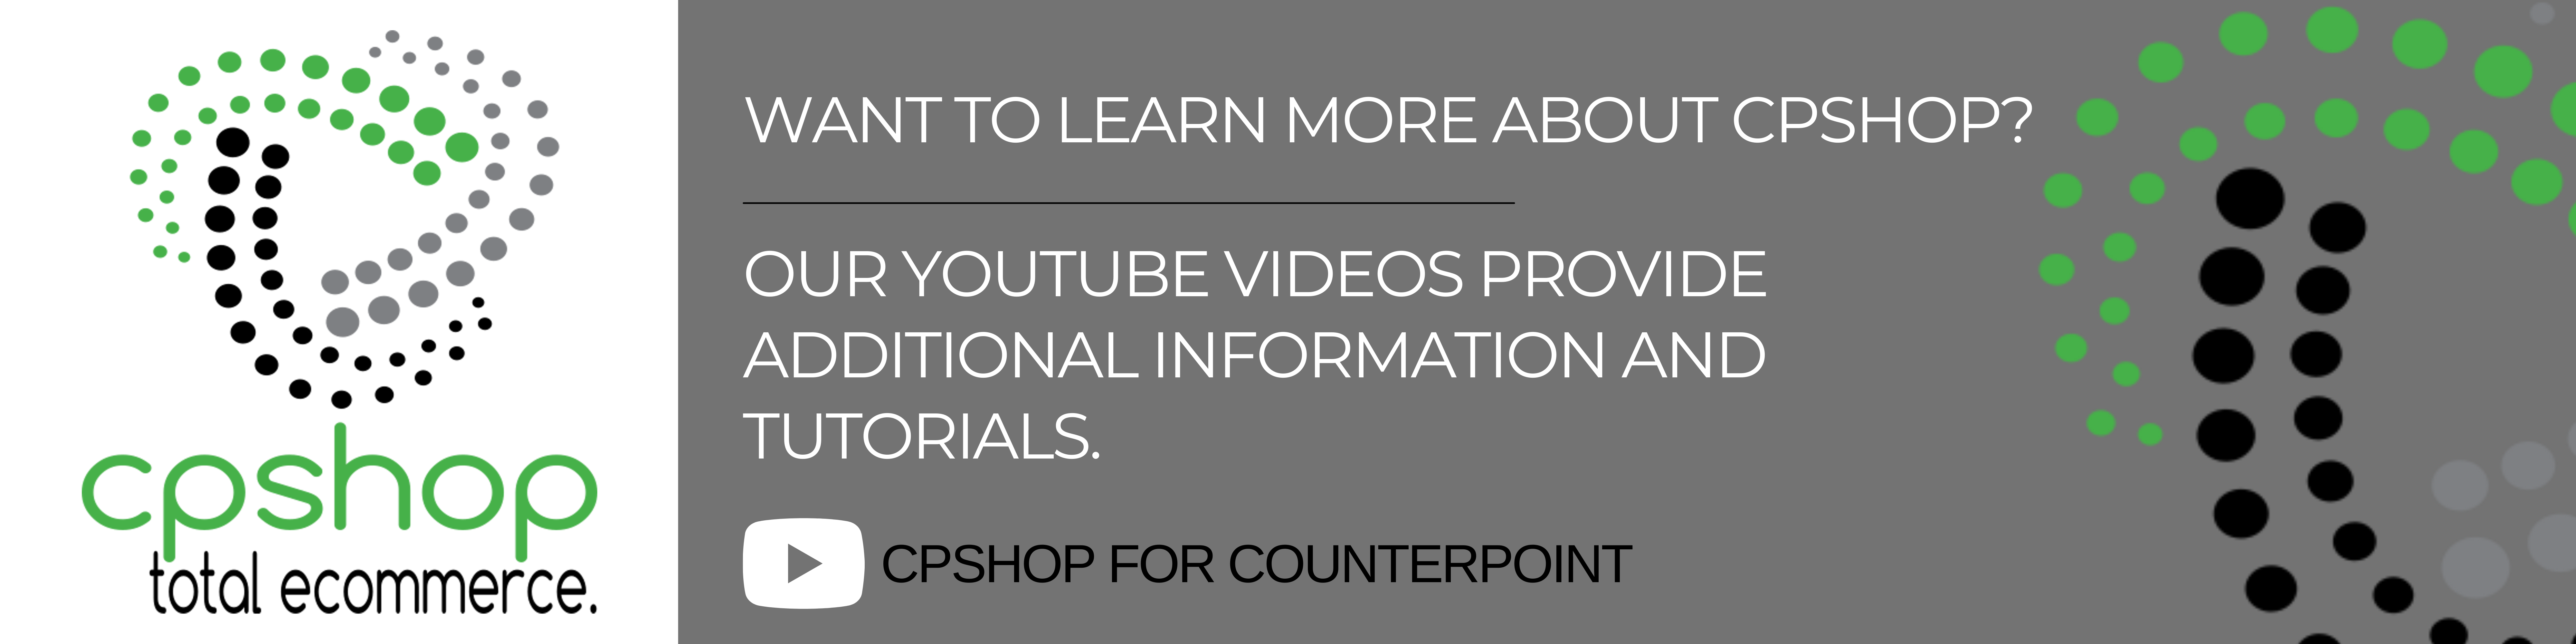 CPShop YouTube Tutorial and Informational Videos